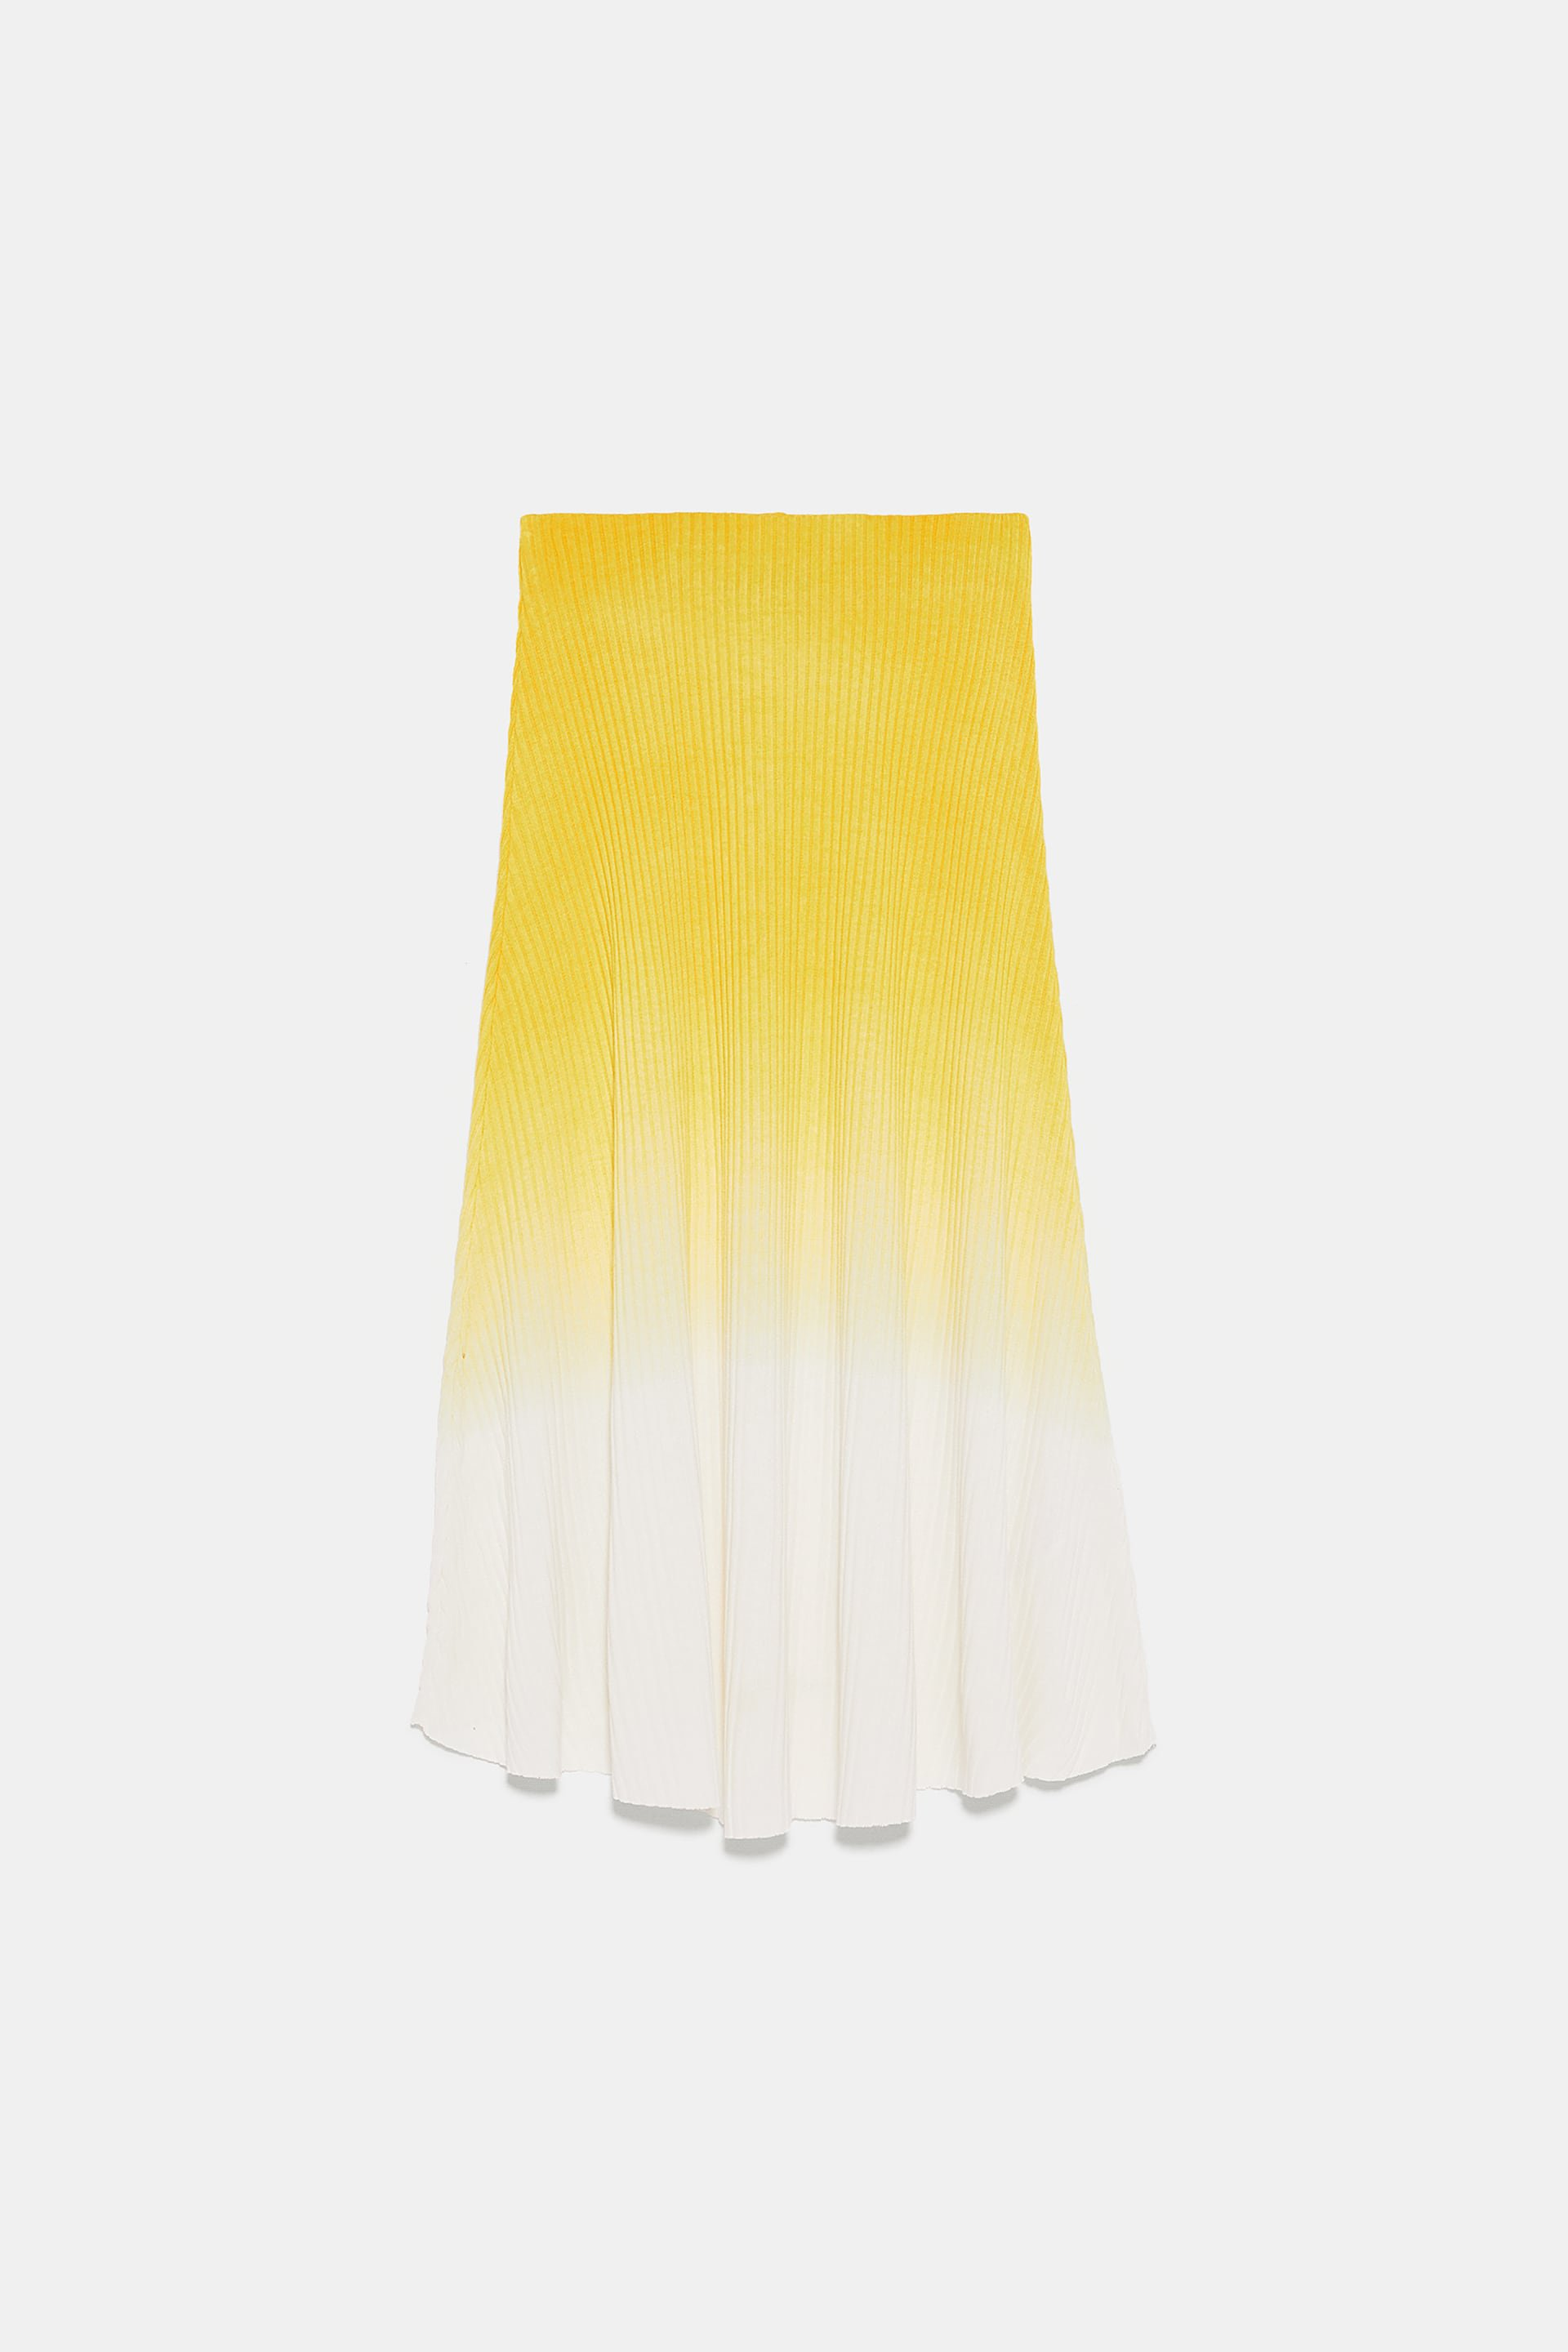 OMBRÉ SKIRT - View All-SKIRTS-WOMAN | ZARA United States